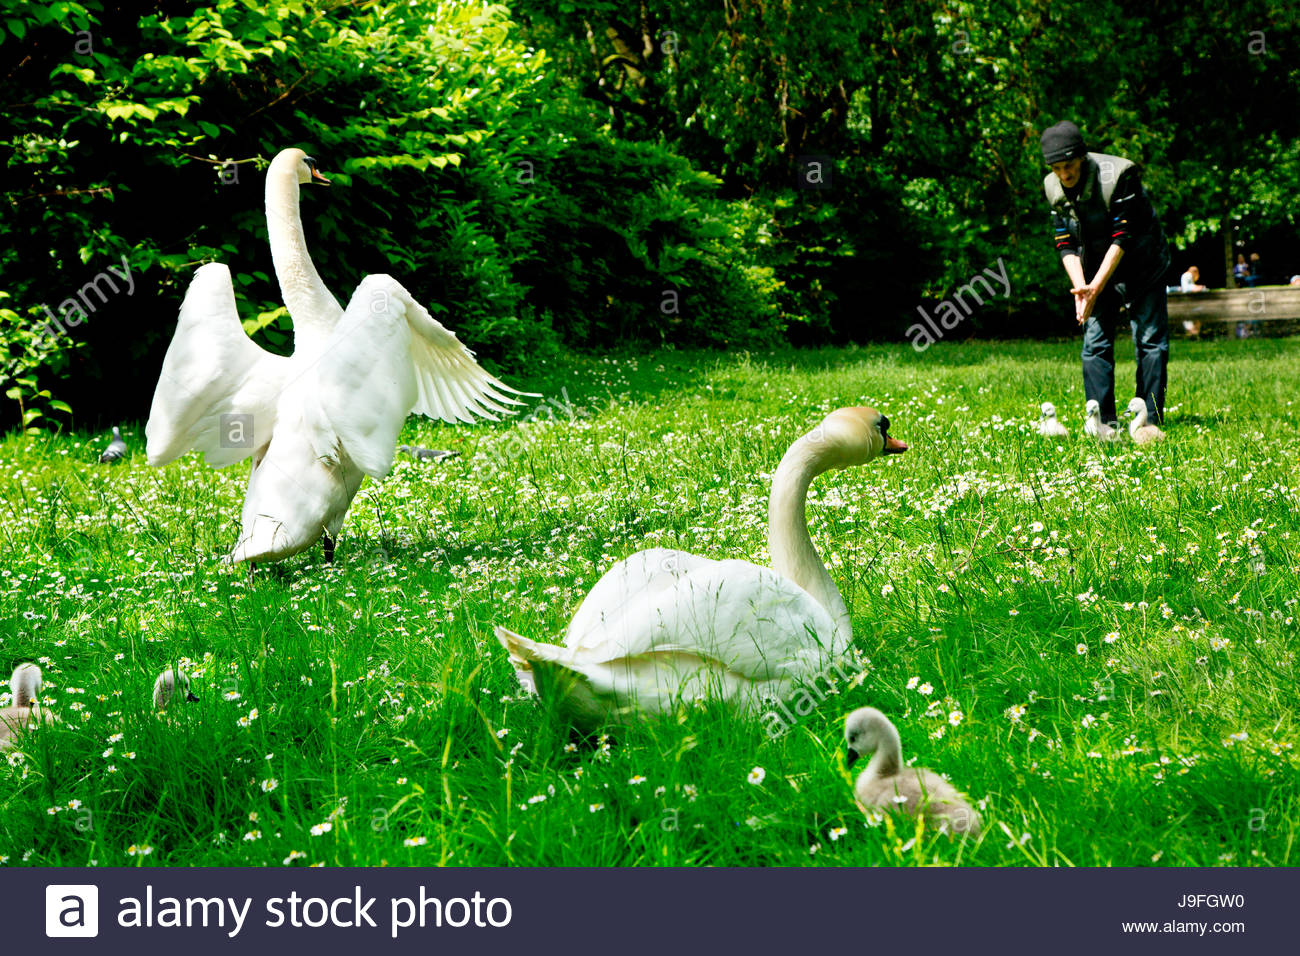 At Saint Stephen's Green Christopher Thompson has been looking after the swans for over ten years. - Stock Image